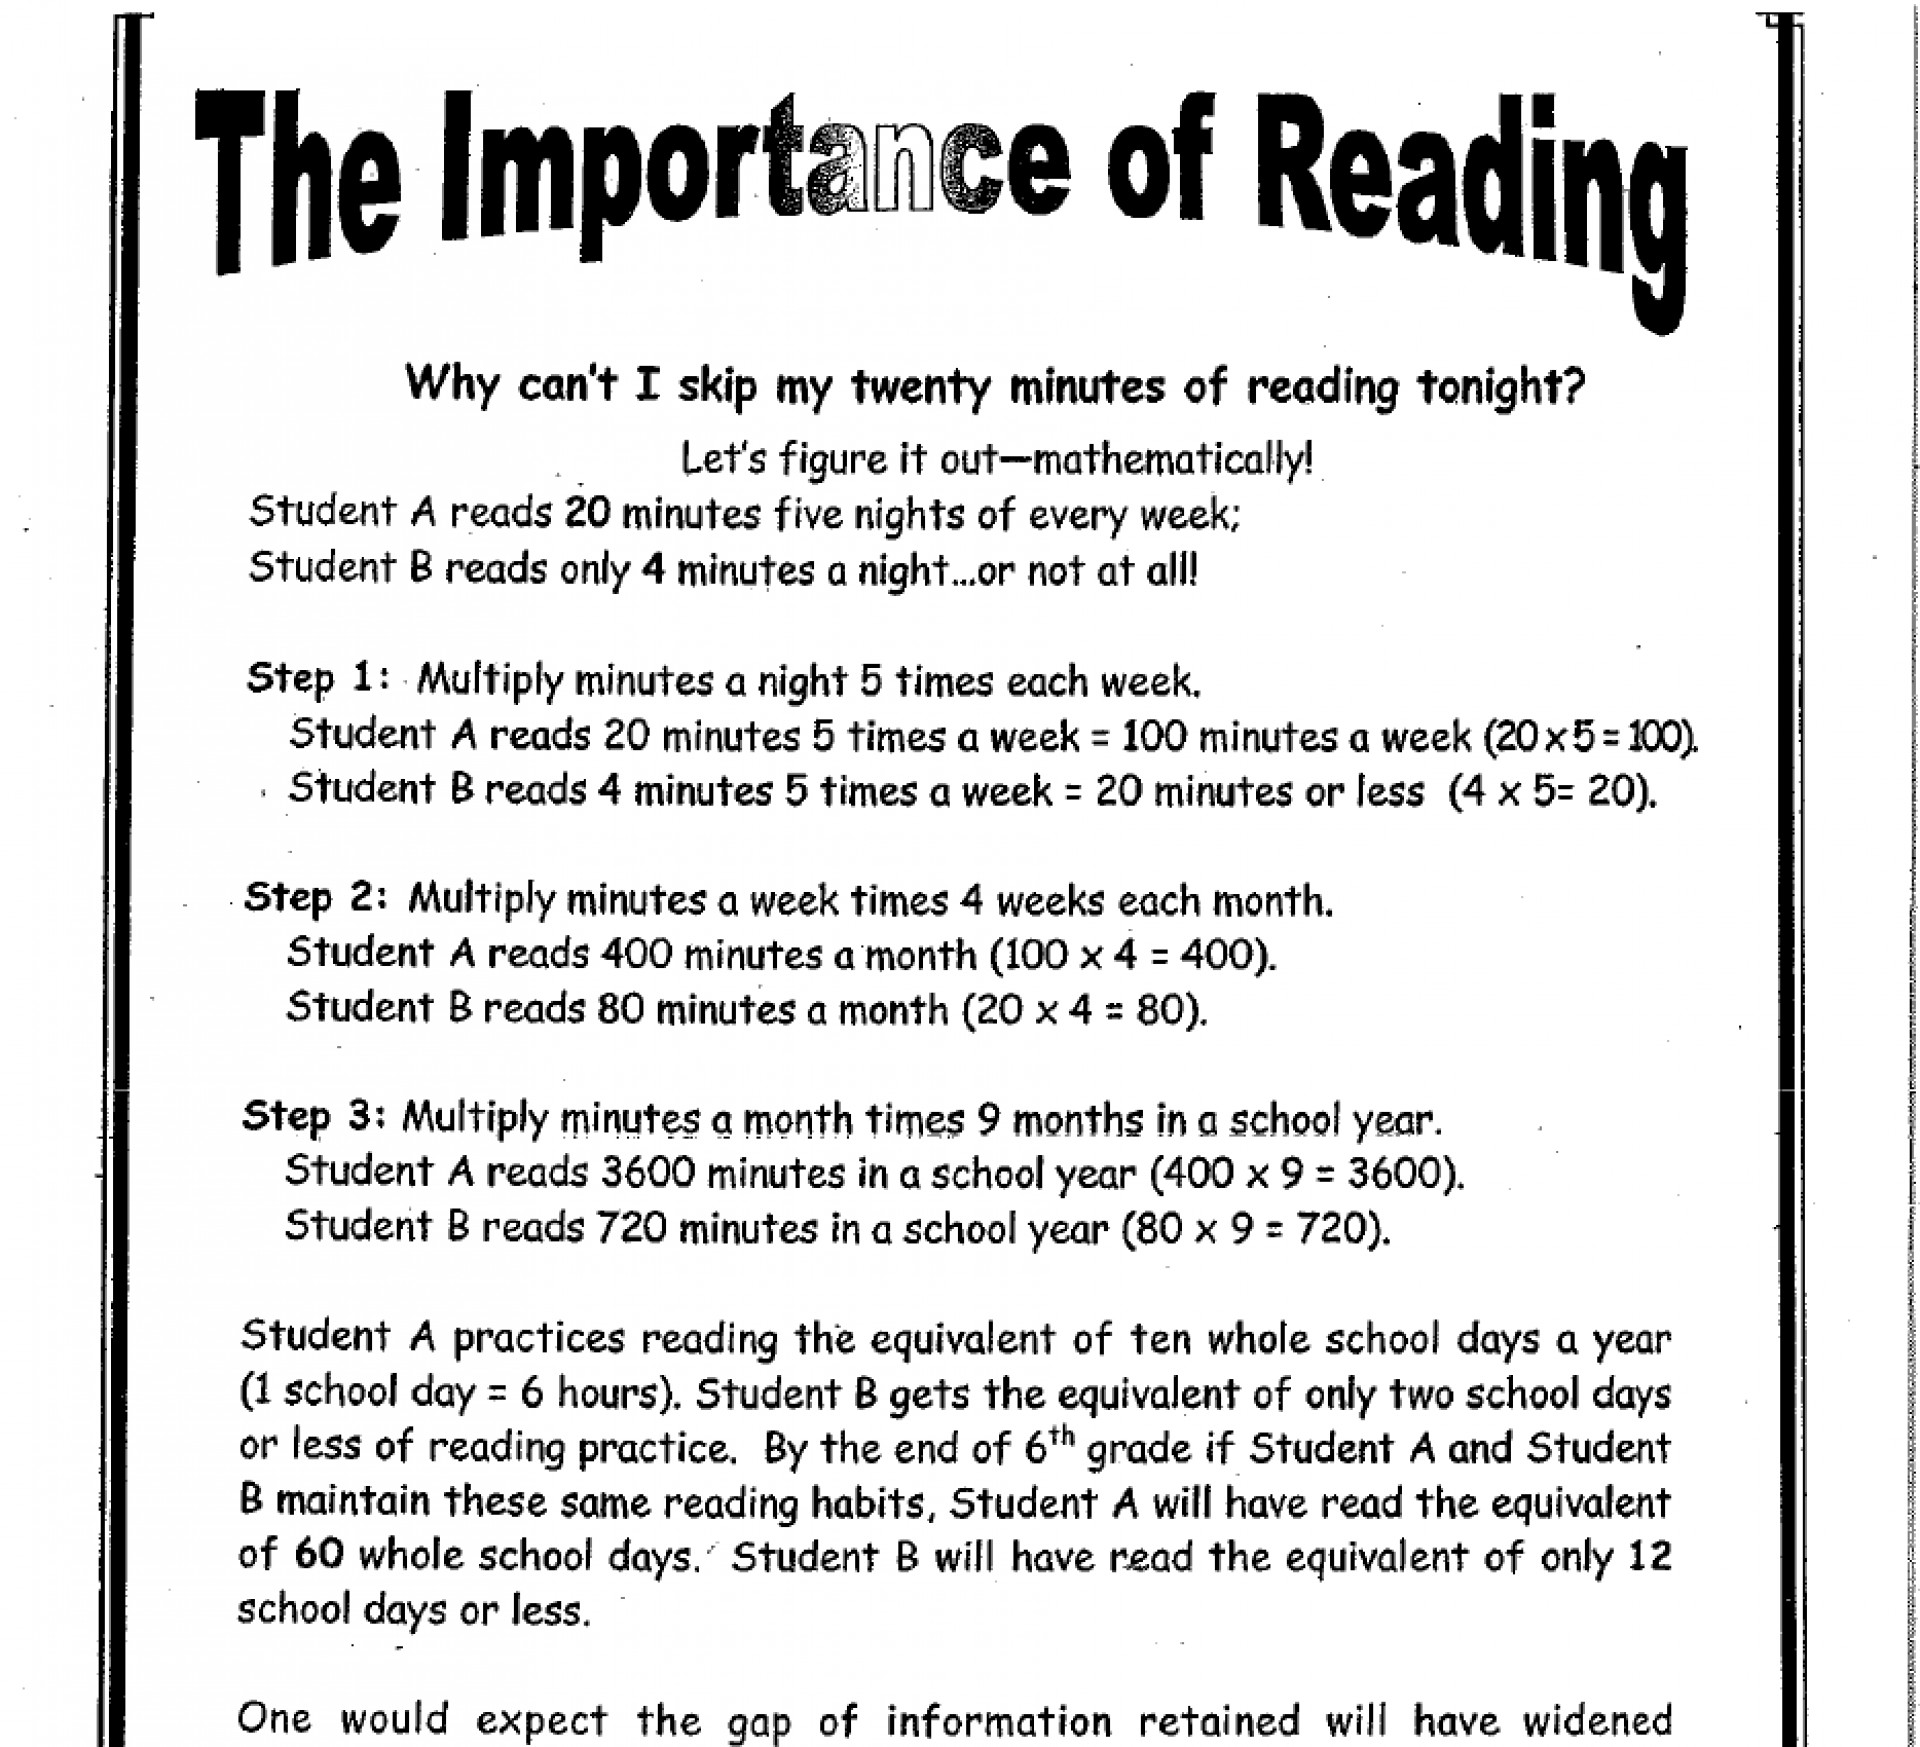 007 Importance Of Reading Essay Essays About Important Term Paper Readingisimportant Why Is For Kids So Argumentative An On Persuasive Short And Writing To Me Explaining In Our Lives Awful Marathi Introduction Wikipedia 1920